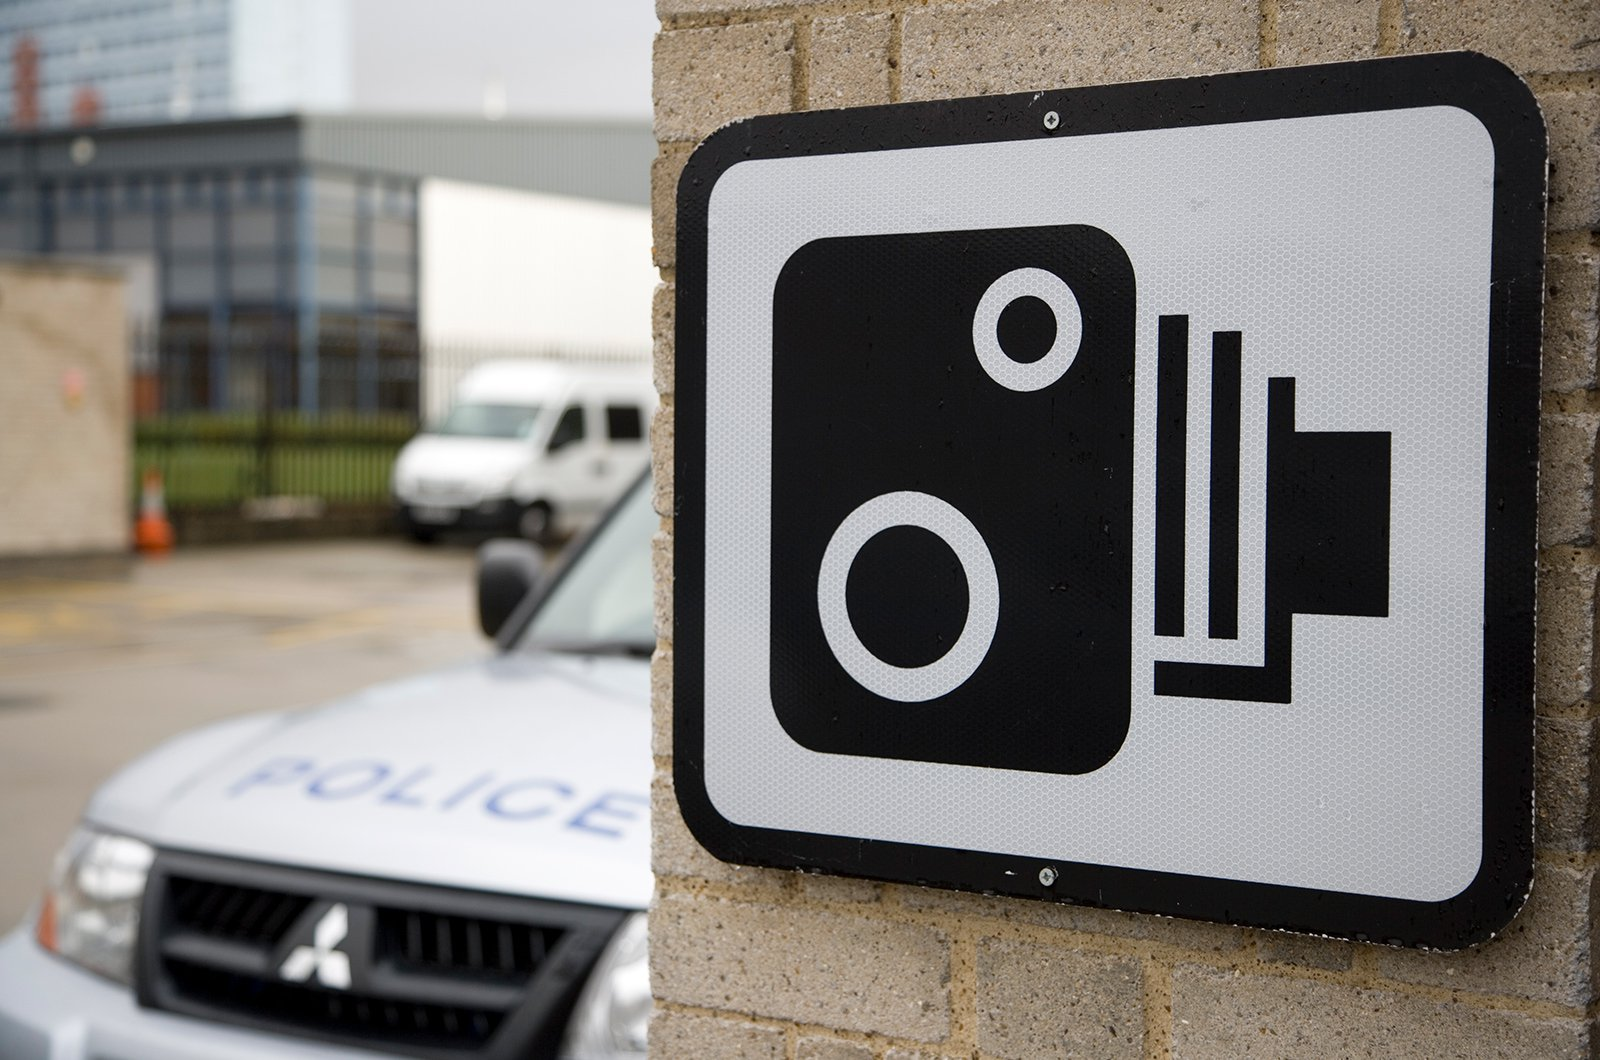 Police car & speed camera sign